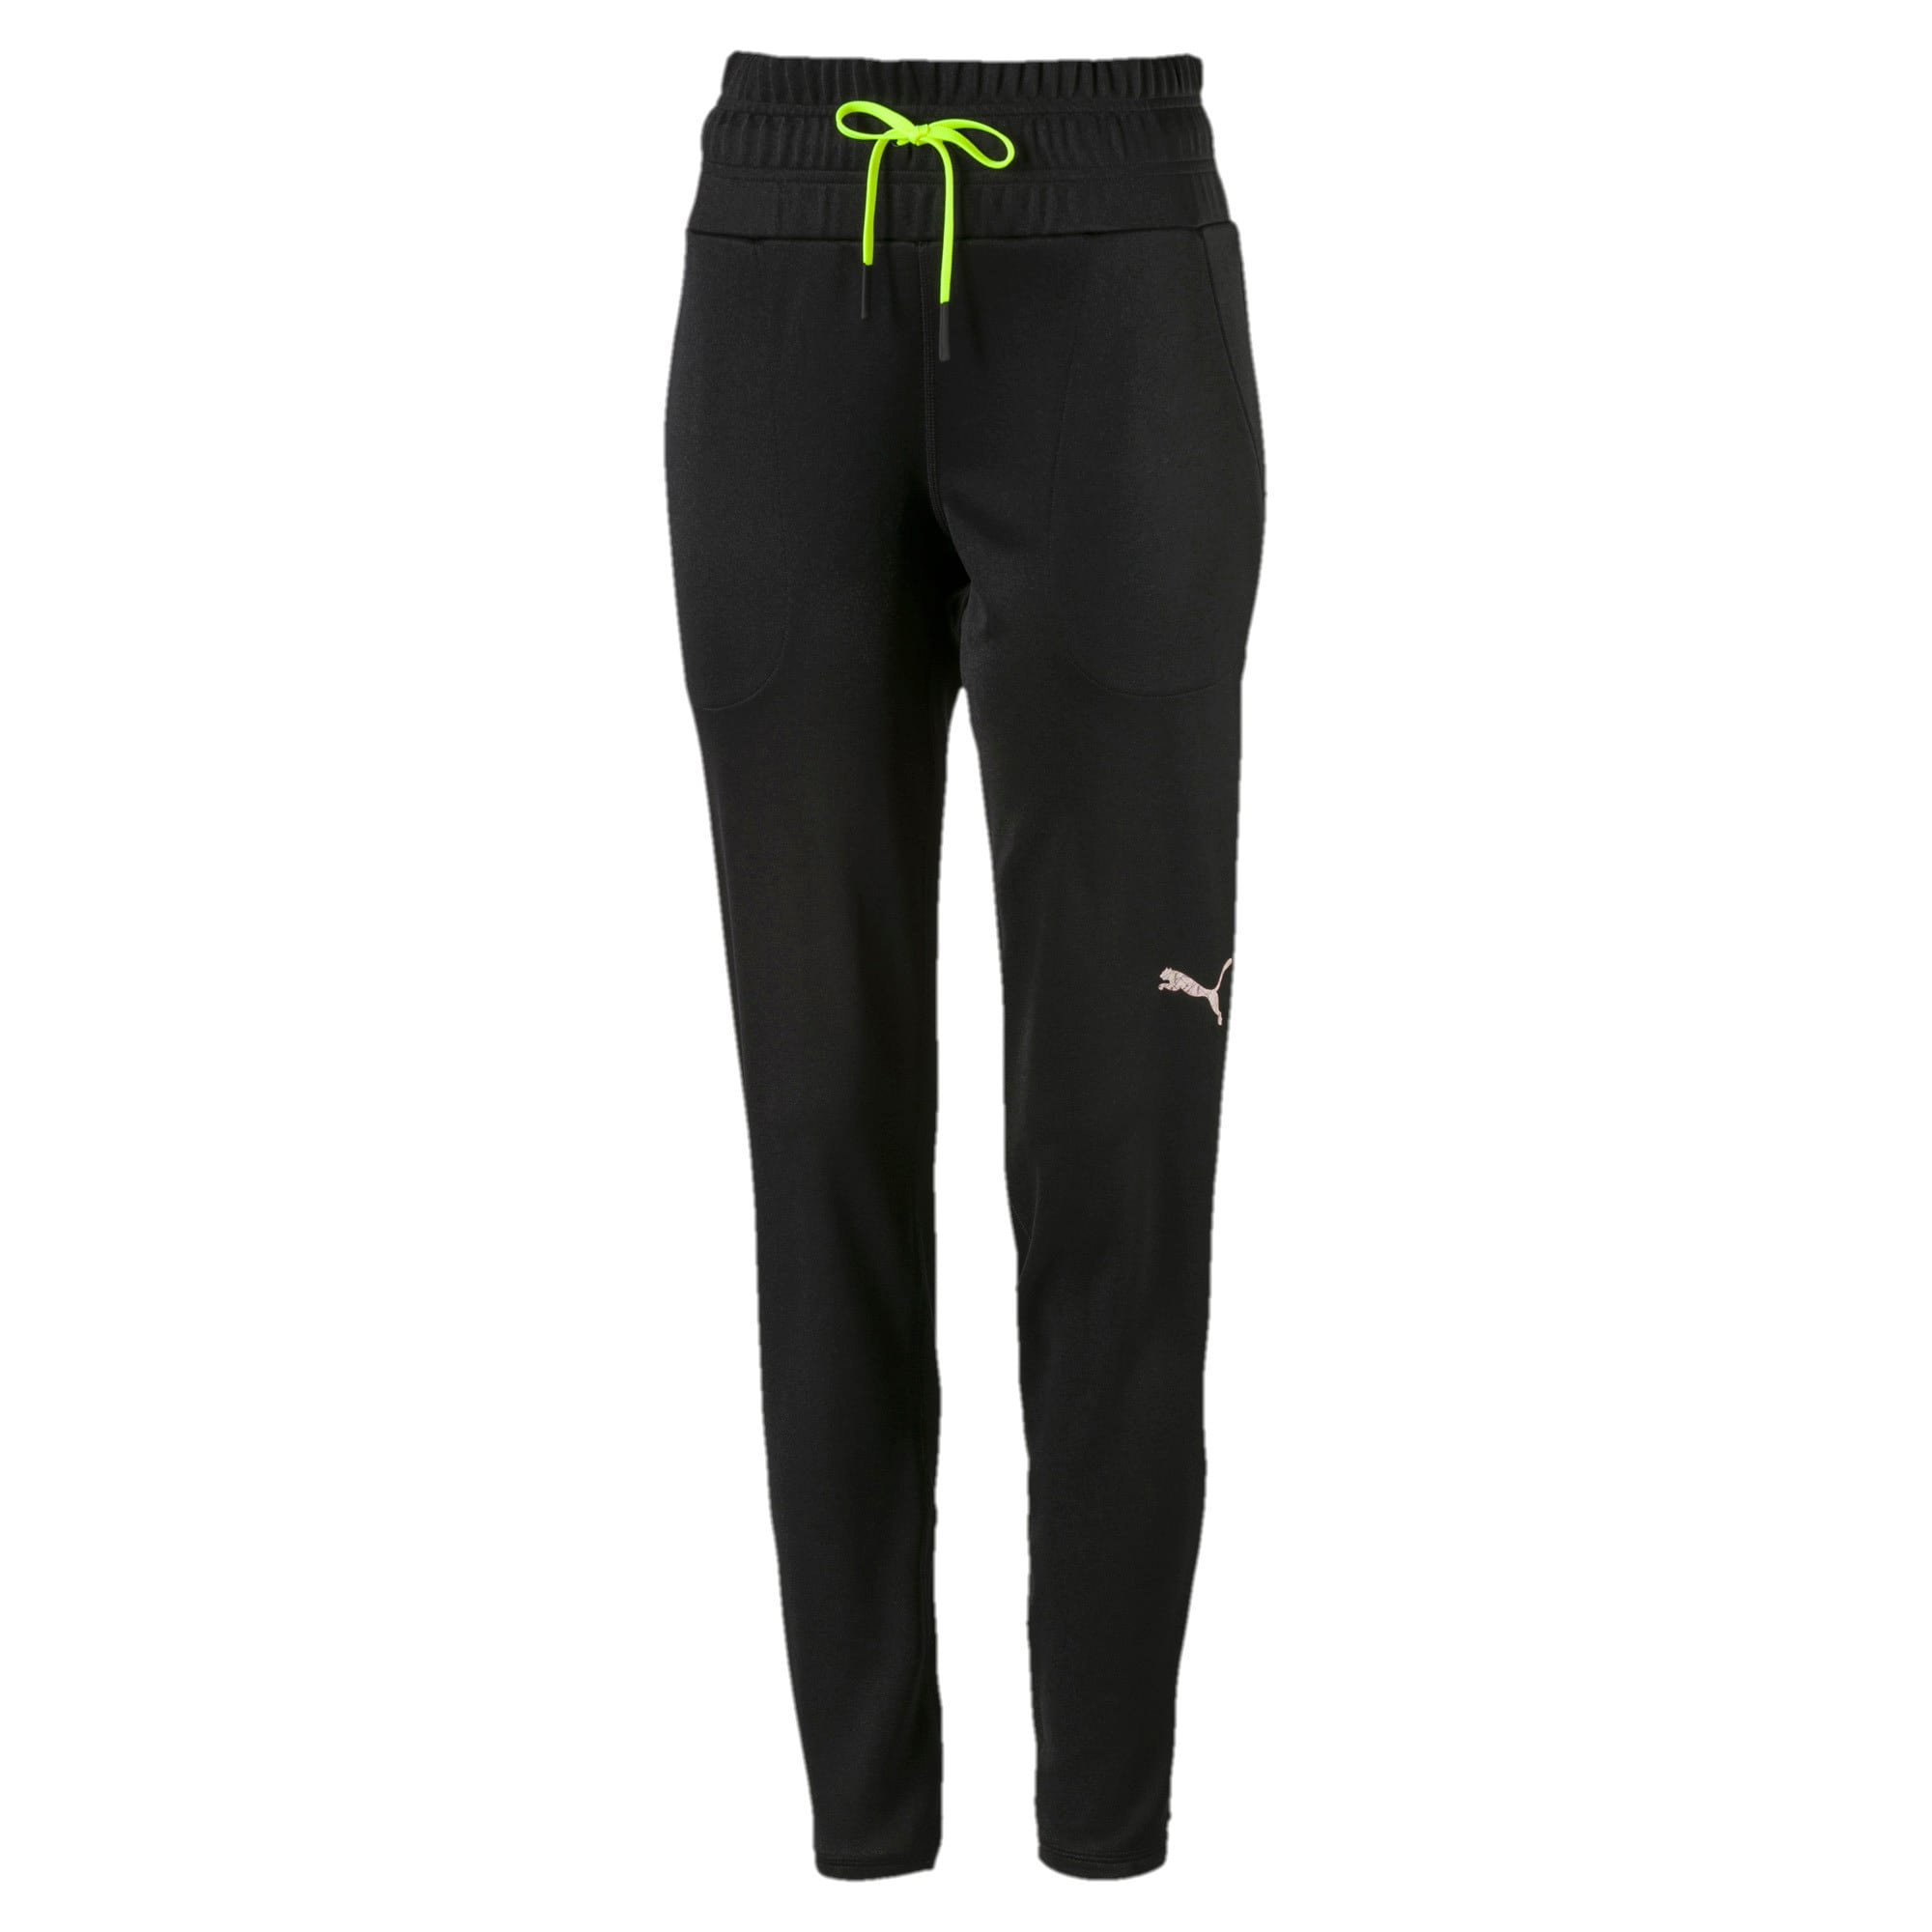 Thumbnail 4 of SHIFT Damen Training Gestrickte Sweatpants, Puma Black, medium